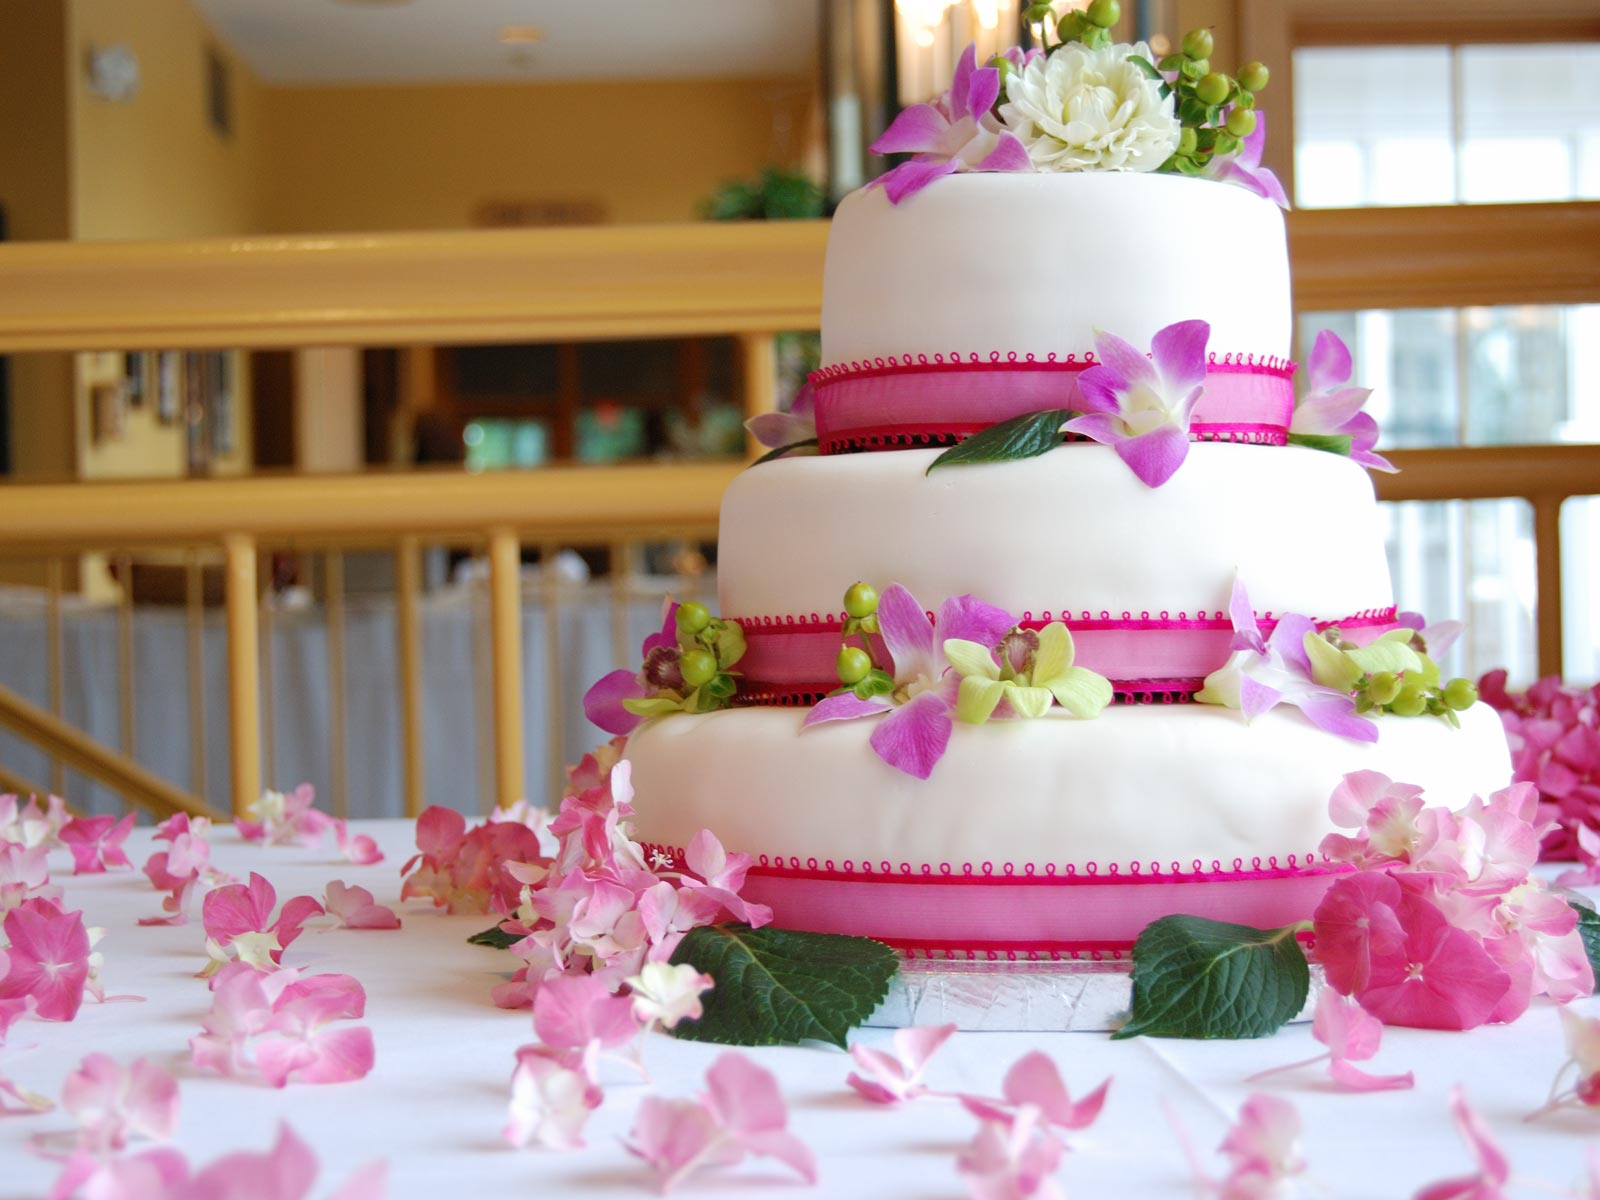 Birthday Cake And Wishes Wallpaper Download Best Birthday Best Cake Images Hd 1600x1200 Wallpaper Teahub Io